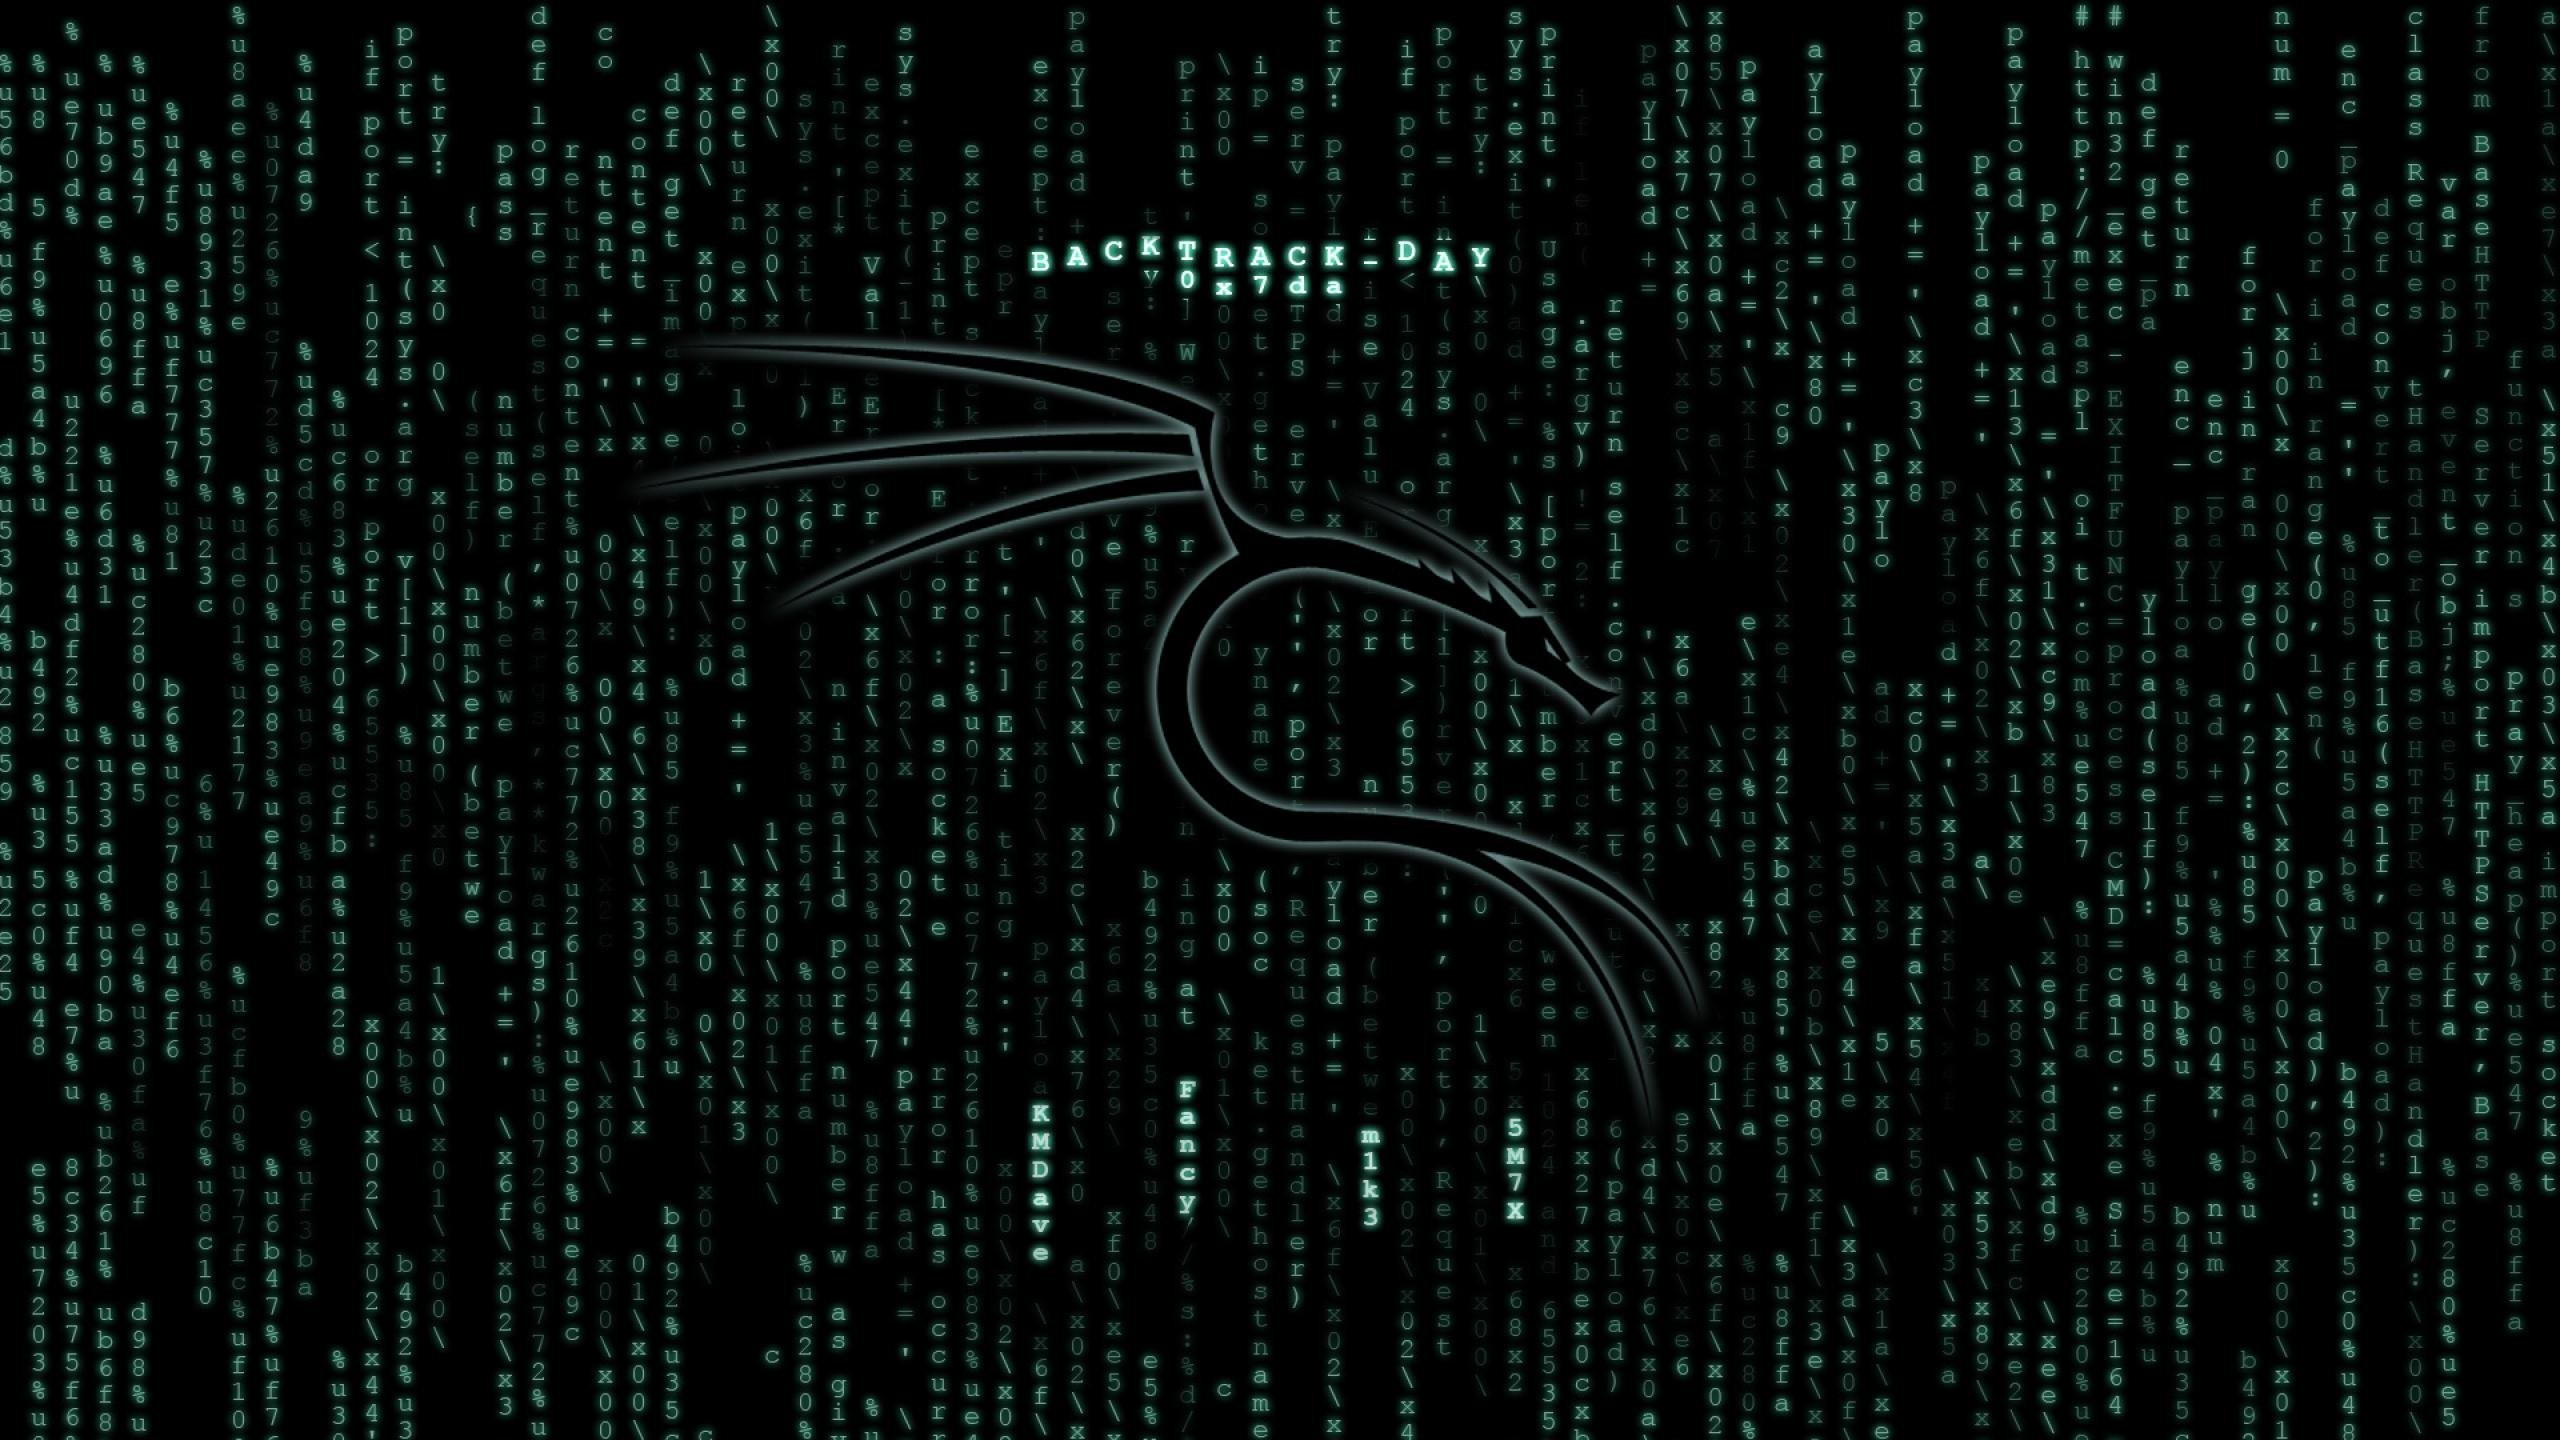 Hacking Wallpaper ·① Download Free Awesome Full HD